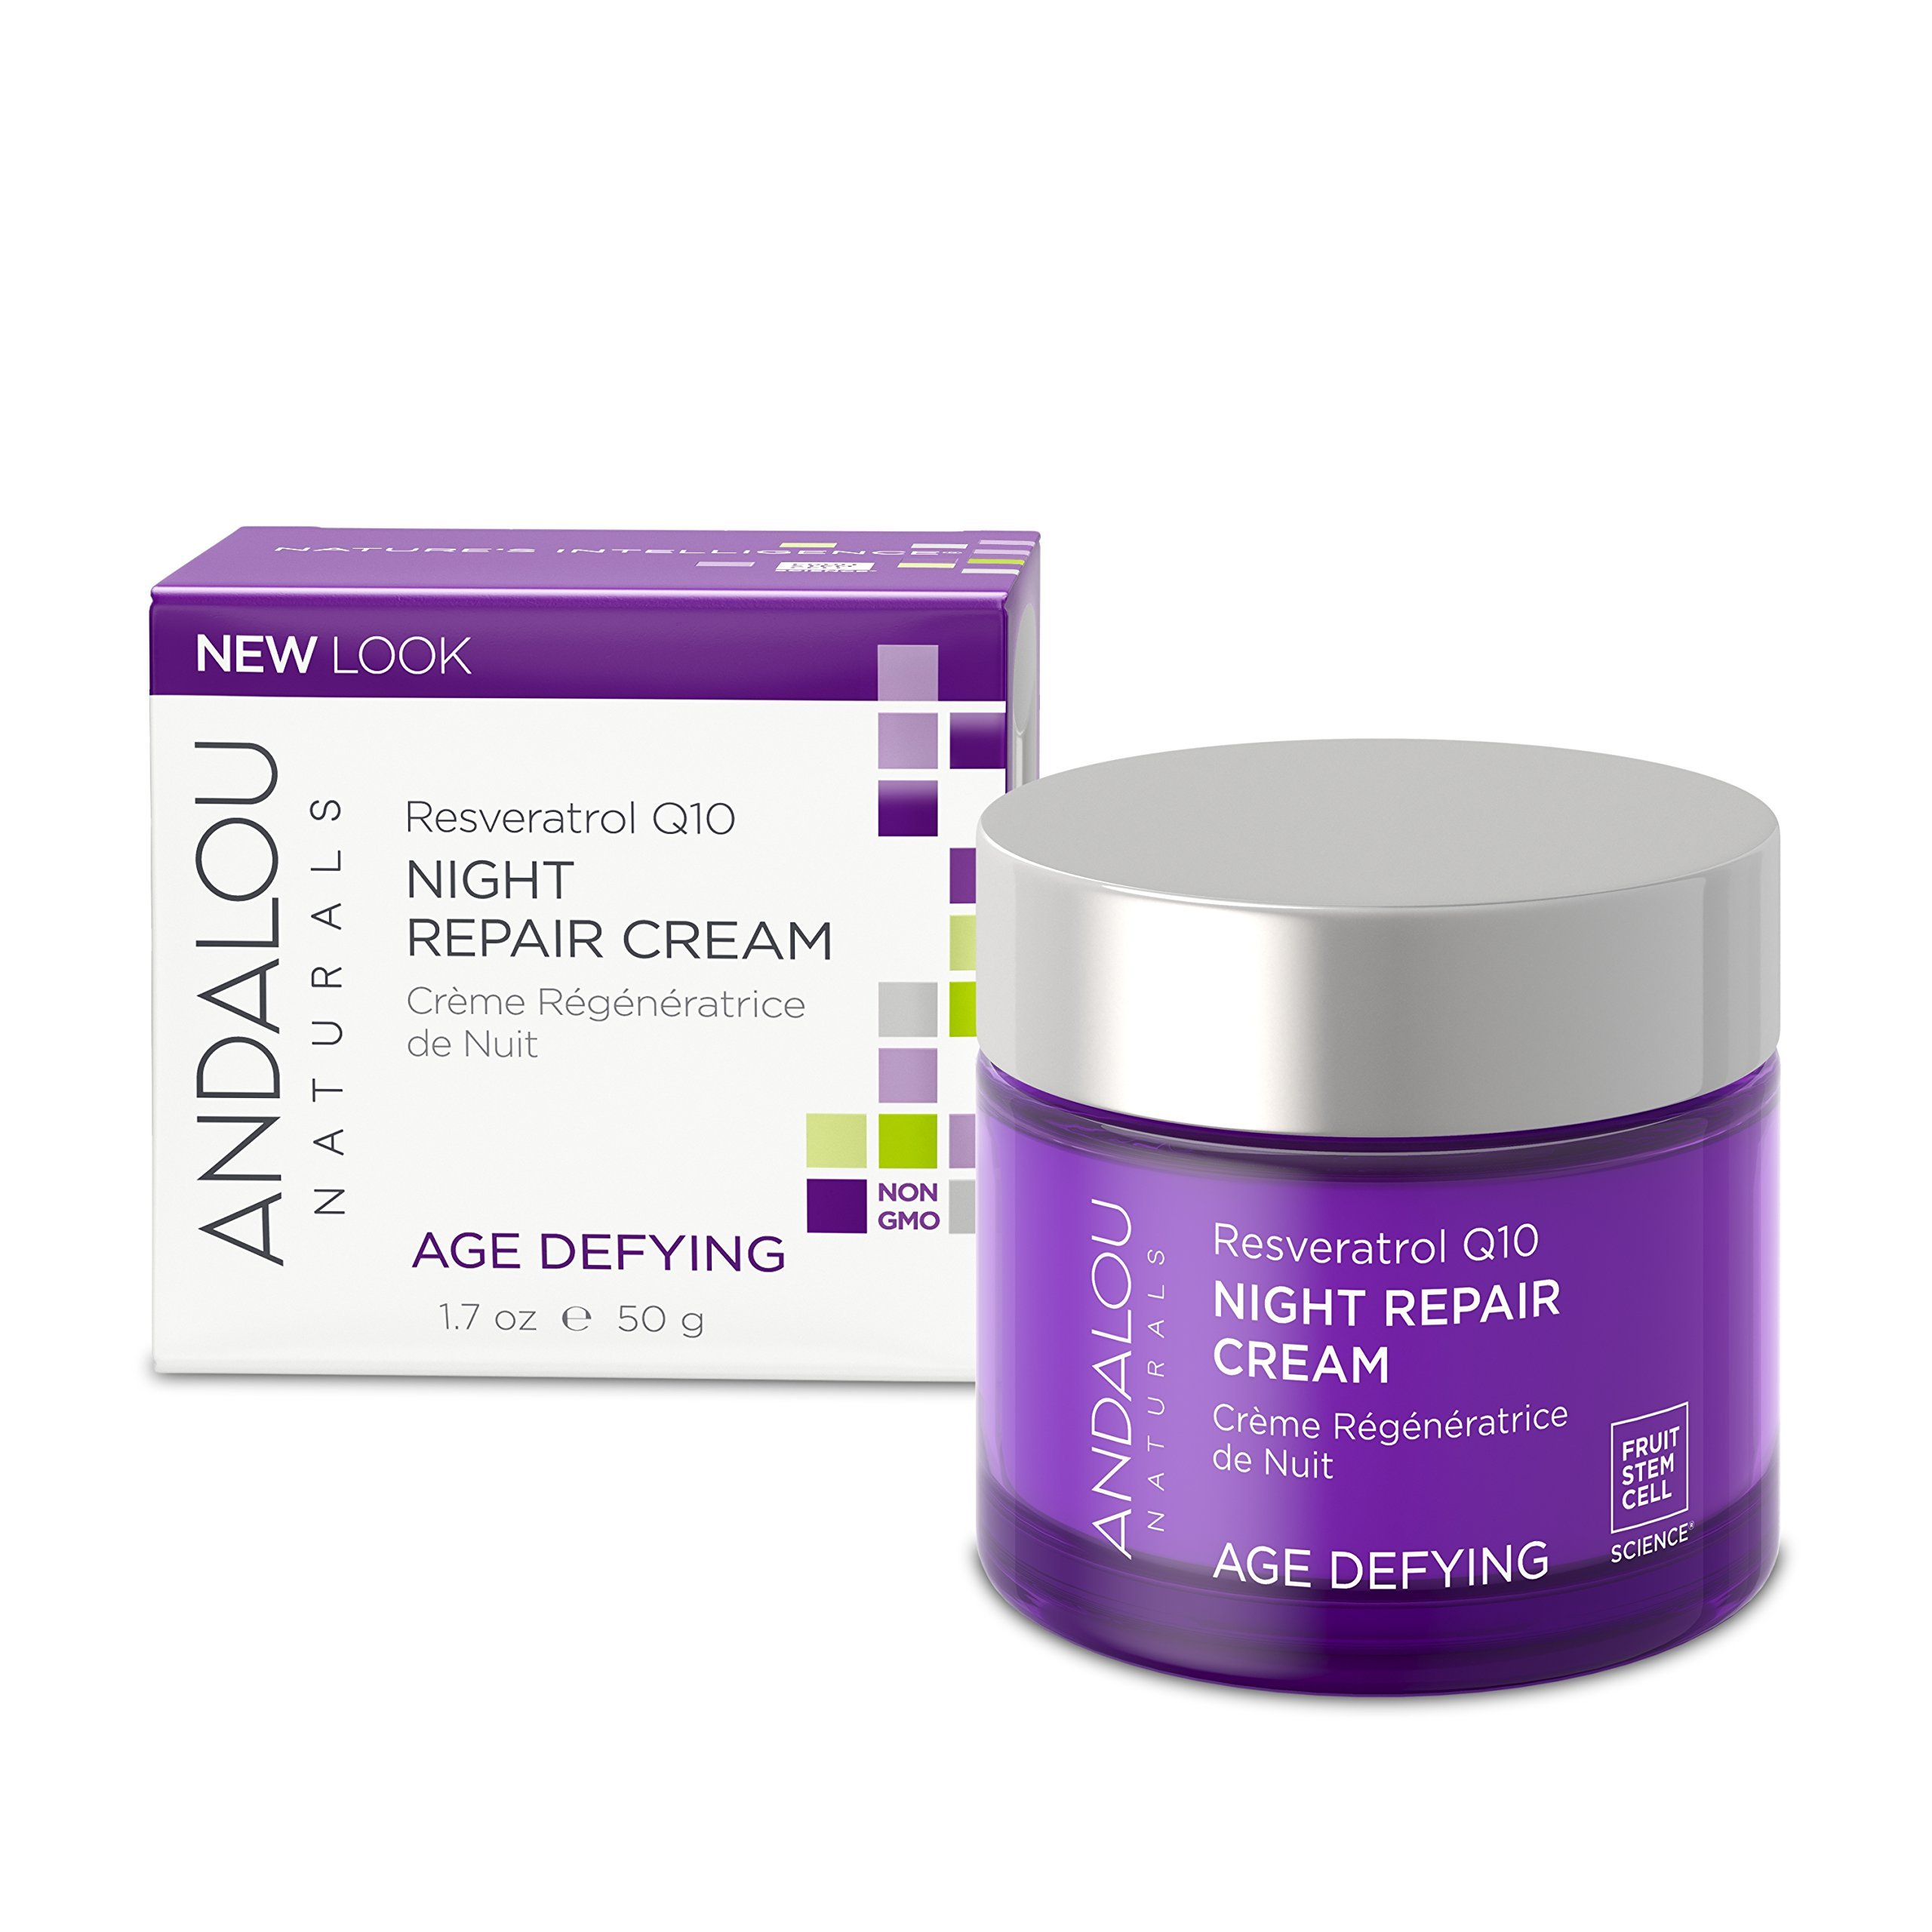 Andalou Naturals Resveratrol Q10 Night Repair Cream, 1.7 oz, For Dry Skin, Fine Lines & Wrinkles, For Softer, Smoother, Younger Looking Skin by Andalou Naturals